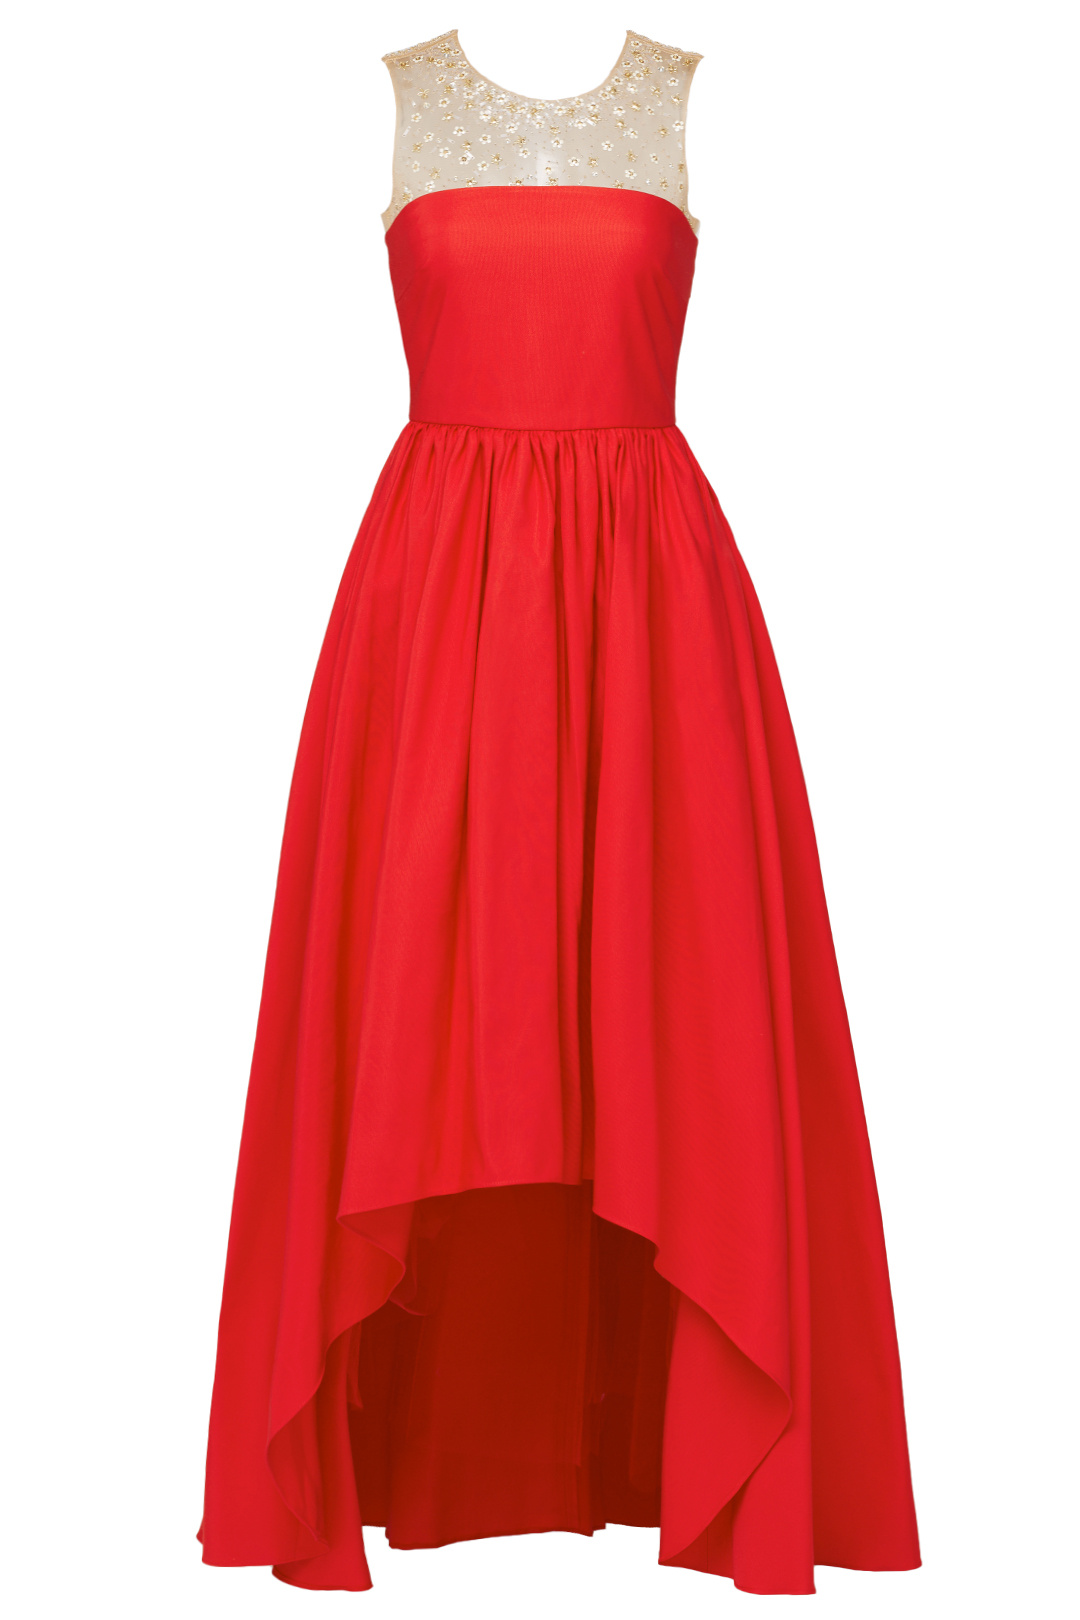 Marchesa Notte Red Women\'s Size 8 Beaded High Low Gown Dress $1295 ...